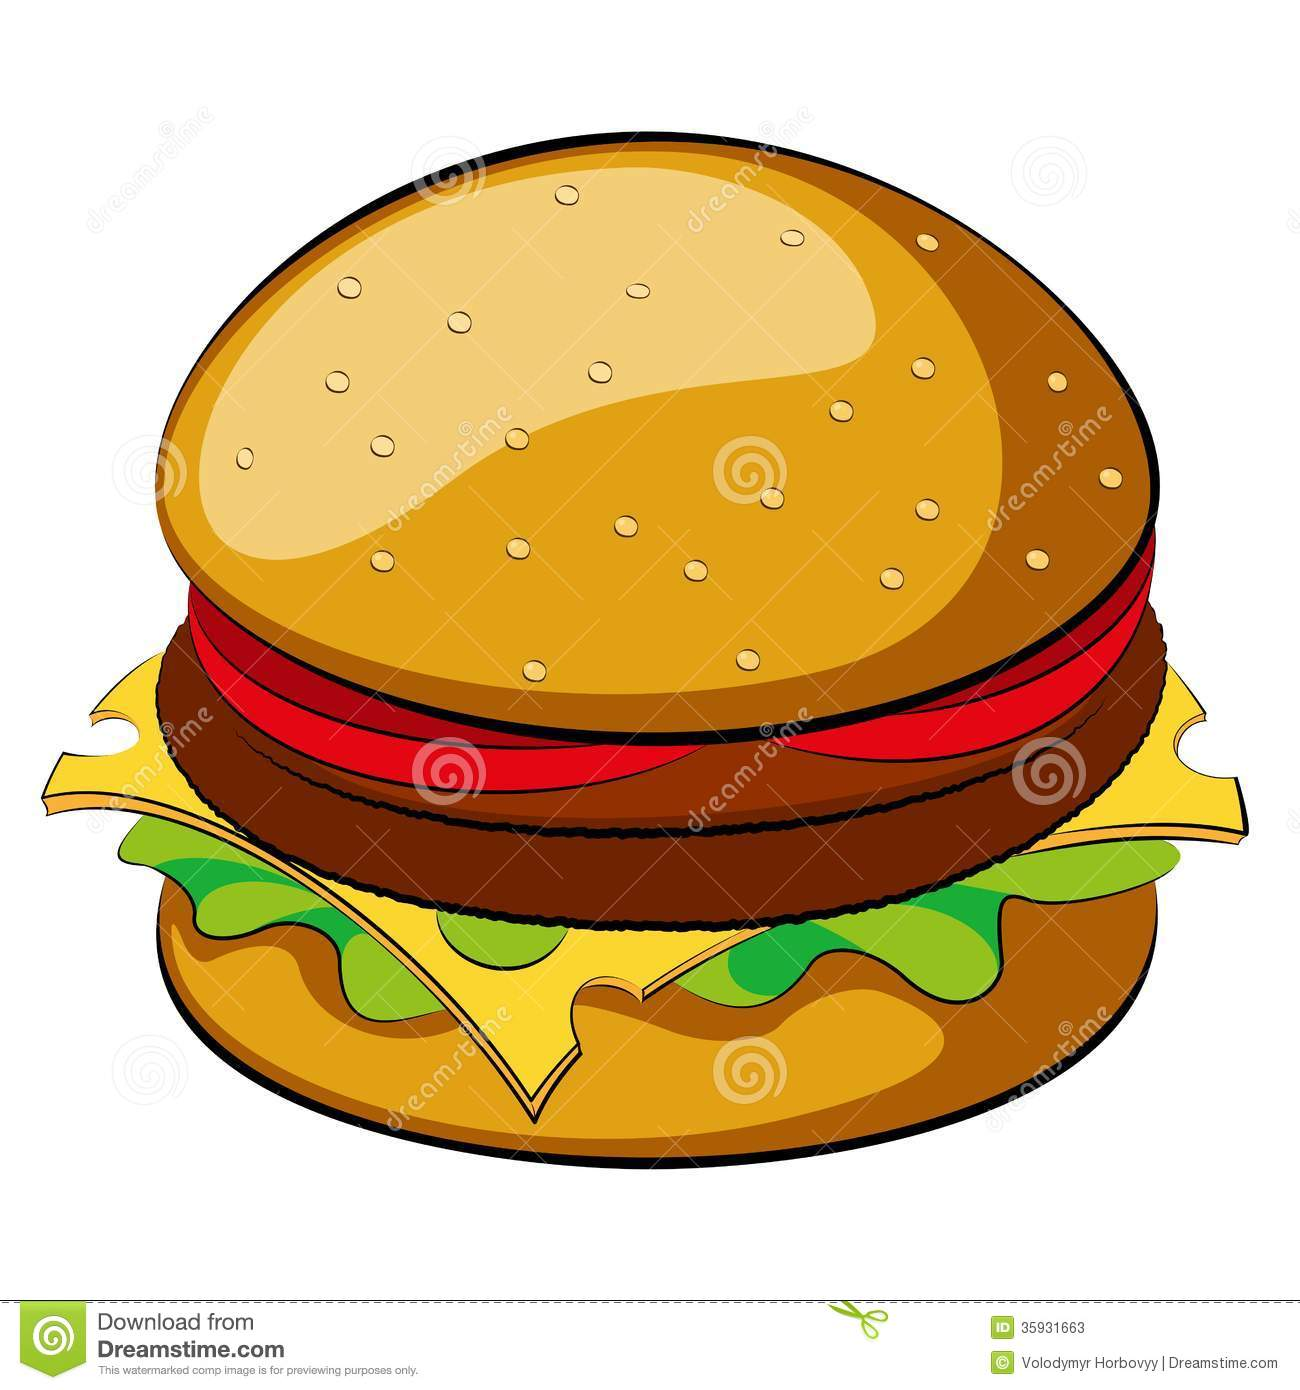 Cute burger clipart.